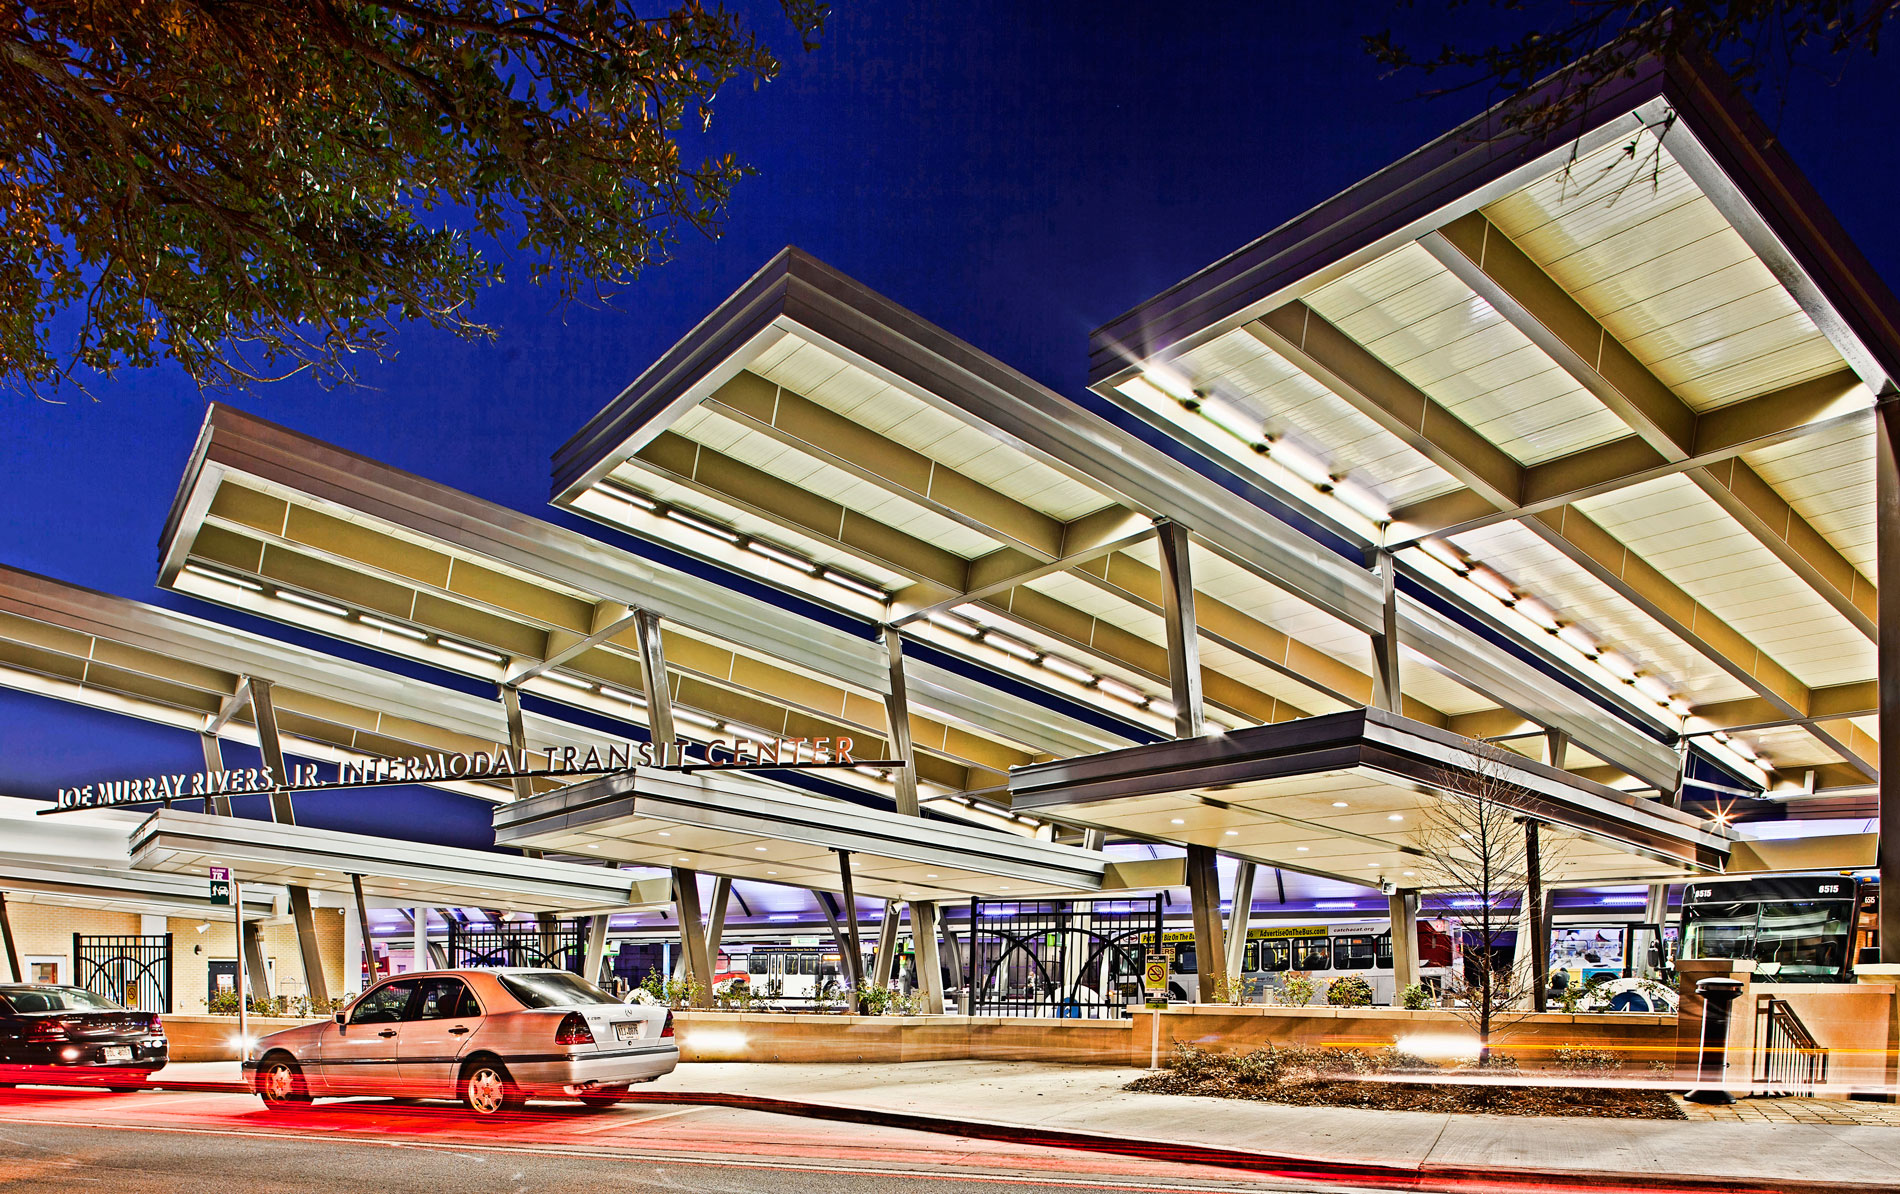 Joe Murray Rivers, Jr. Intermodal Transit Center - Greyhound Canopies